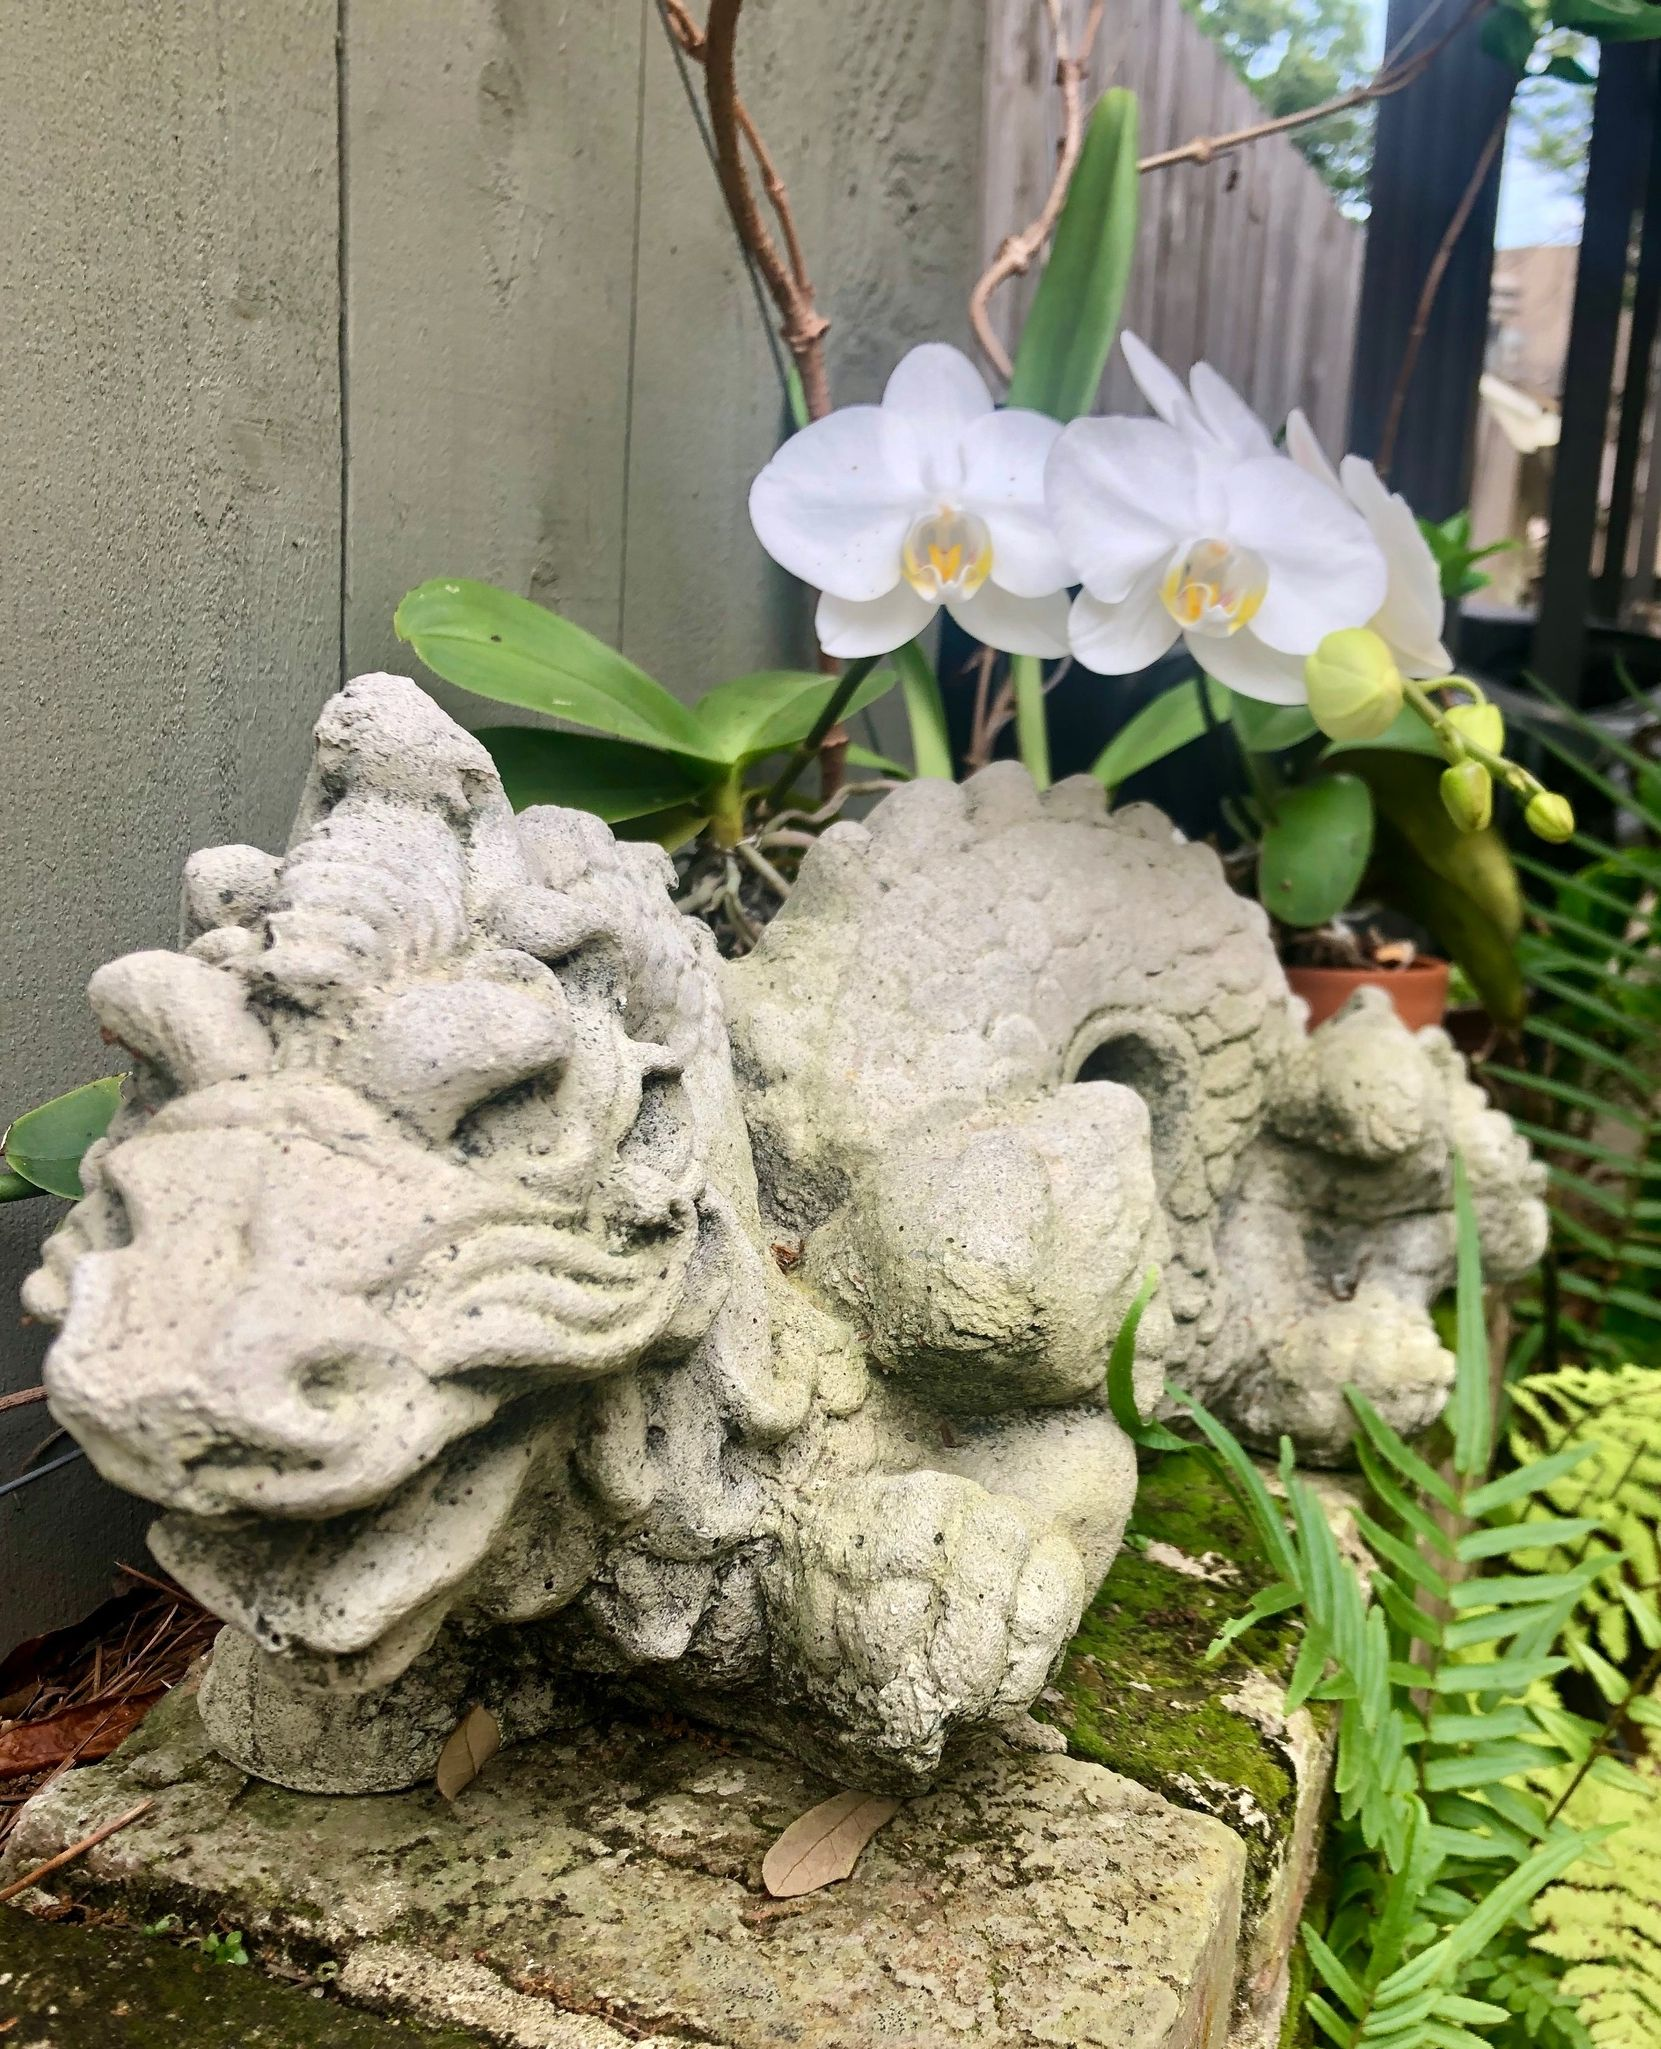 Tell us - where is the most unexpected place you find inspiration?  #interiordesign #design #susancurriedesign #inspire #luxuryliving #houseenvy #neworleansinteriors #neworleansinteriordesign #nolainteriordesigner #interiordesigninspiration #interiordecor #inspiration #designinspo